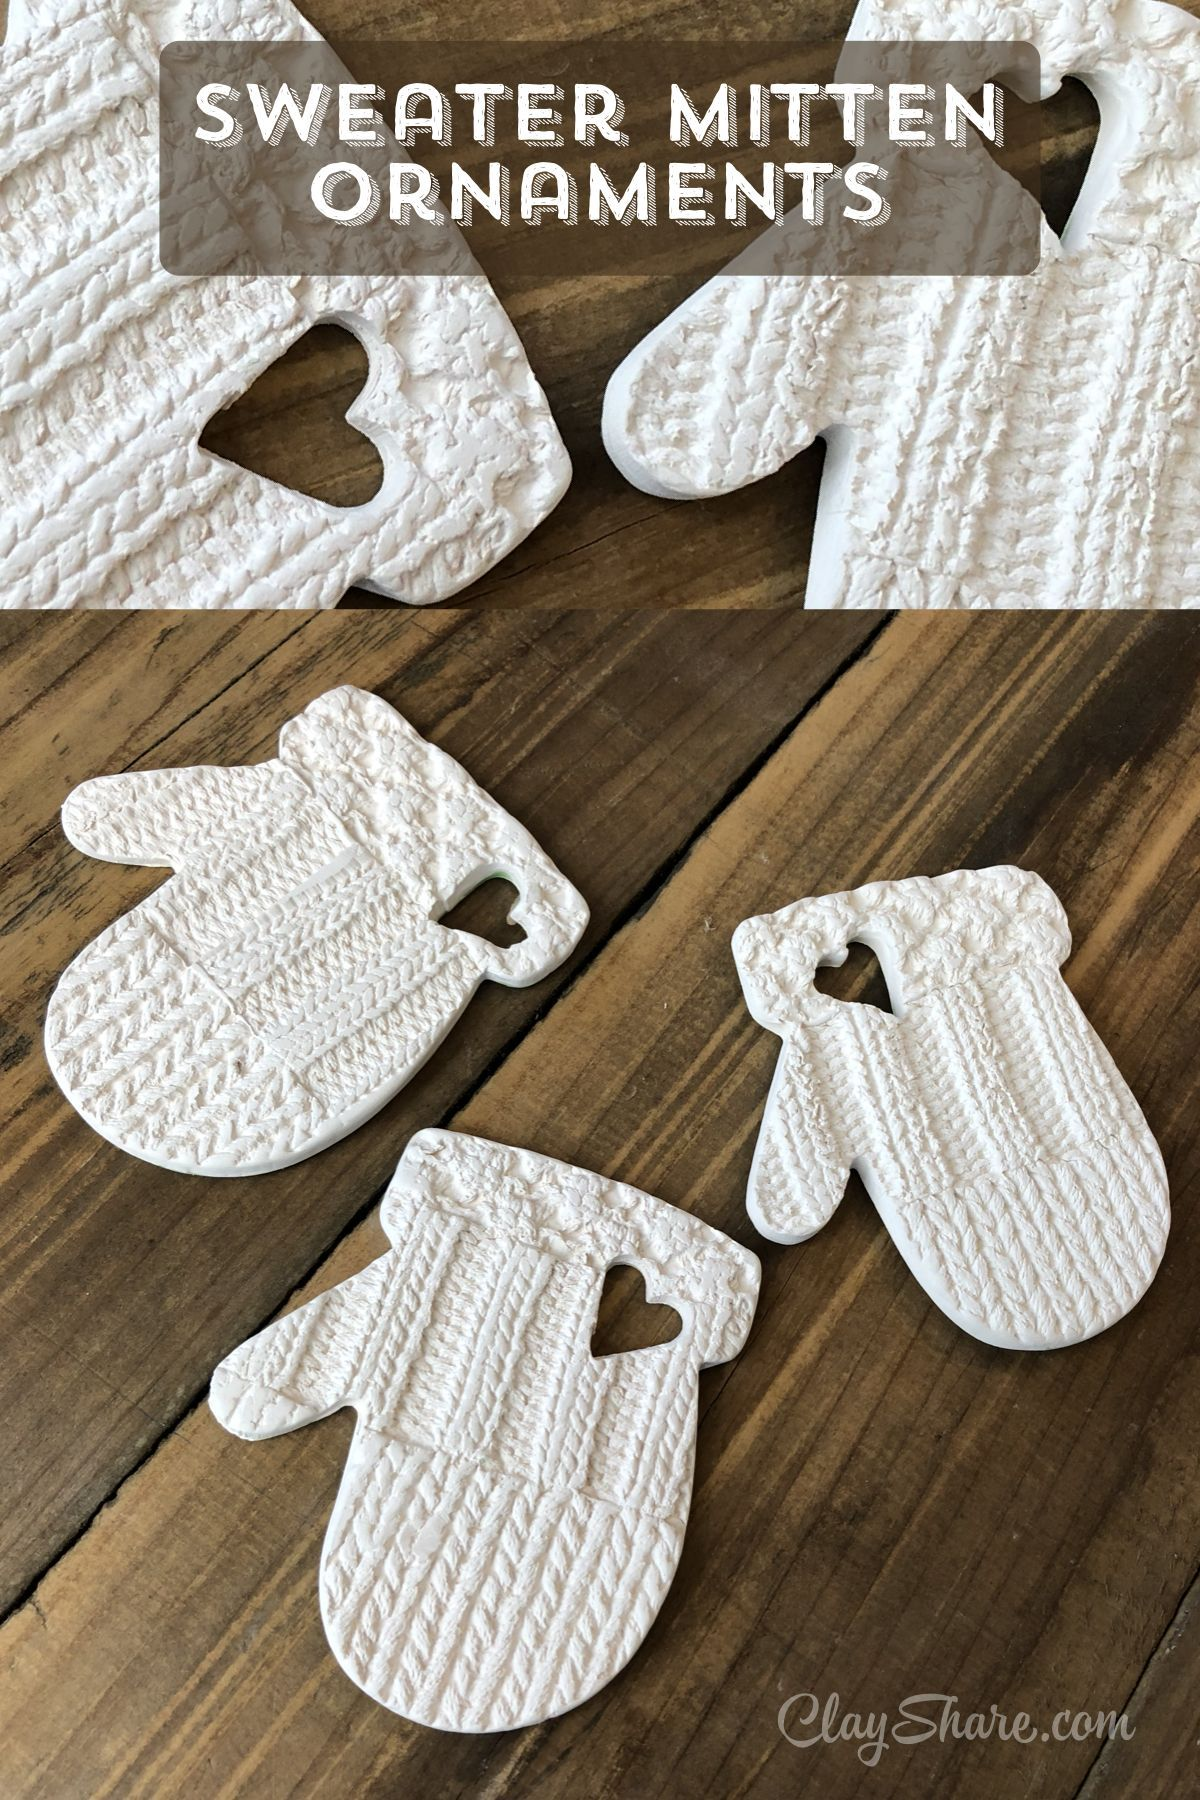 Mitten Ornaments #potteryclasses Learn how to make these super cute mitten ornaments with ClayShare. We have over 200 online pottery classes, weekly live broadcasts, templates, glaze recipes and more, sign up for free today! #onlineclasses